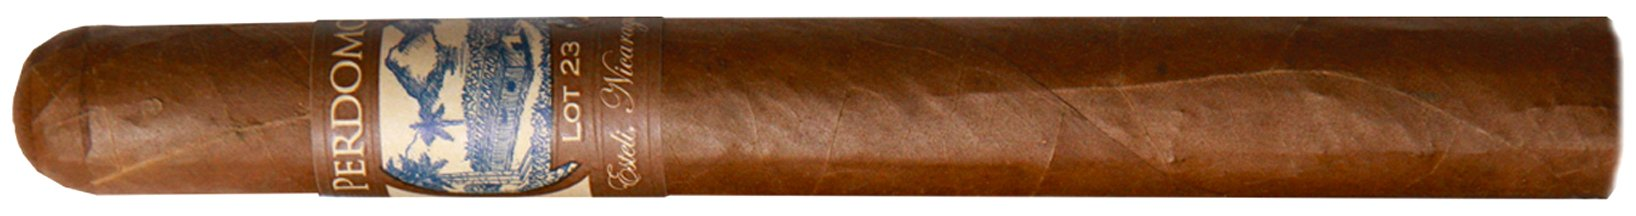 Perdomo Lot 23 Natural Churchill